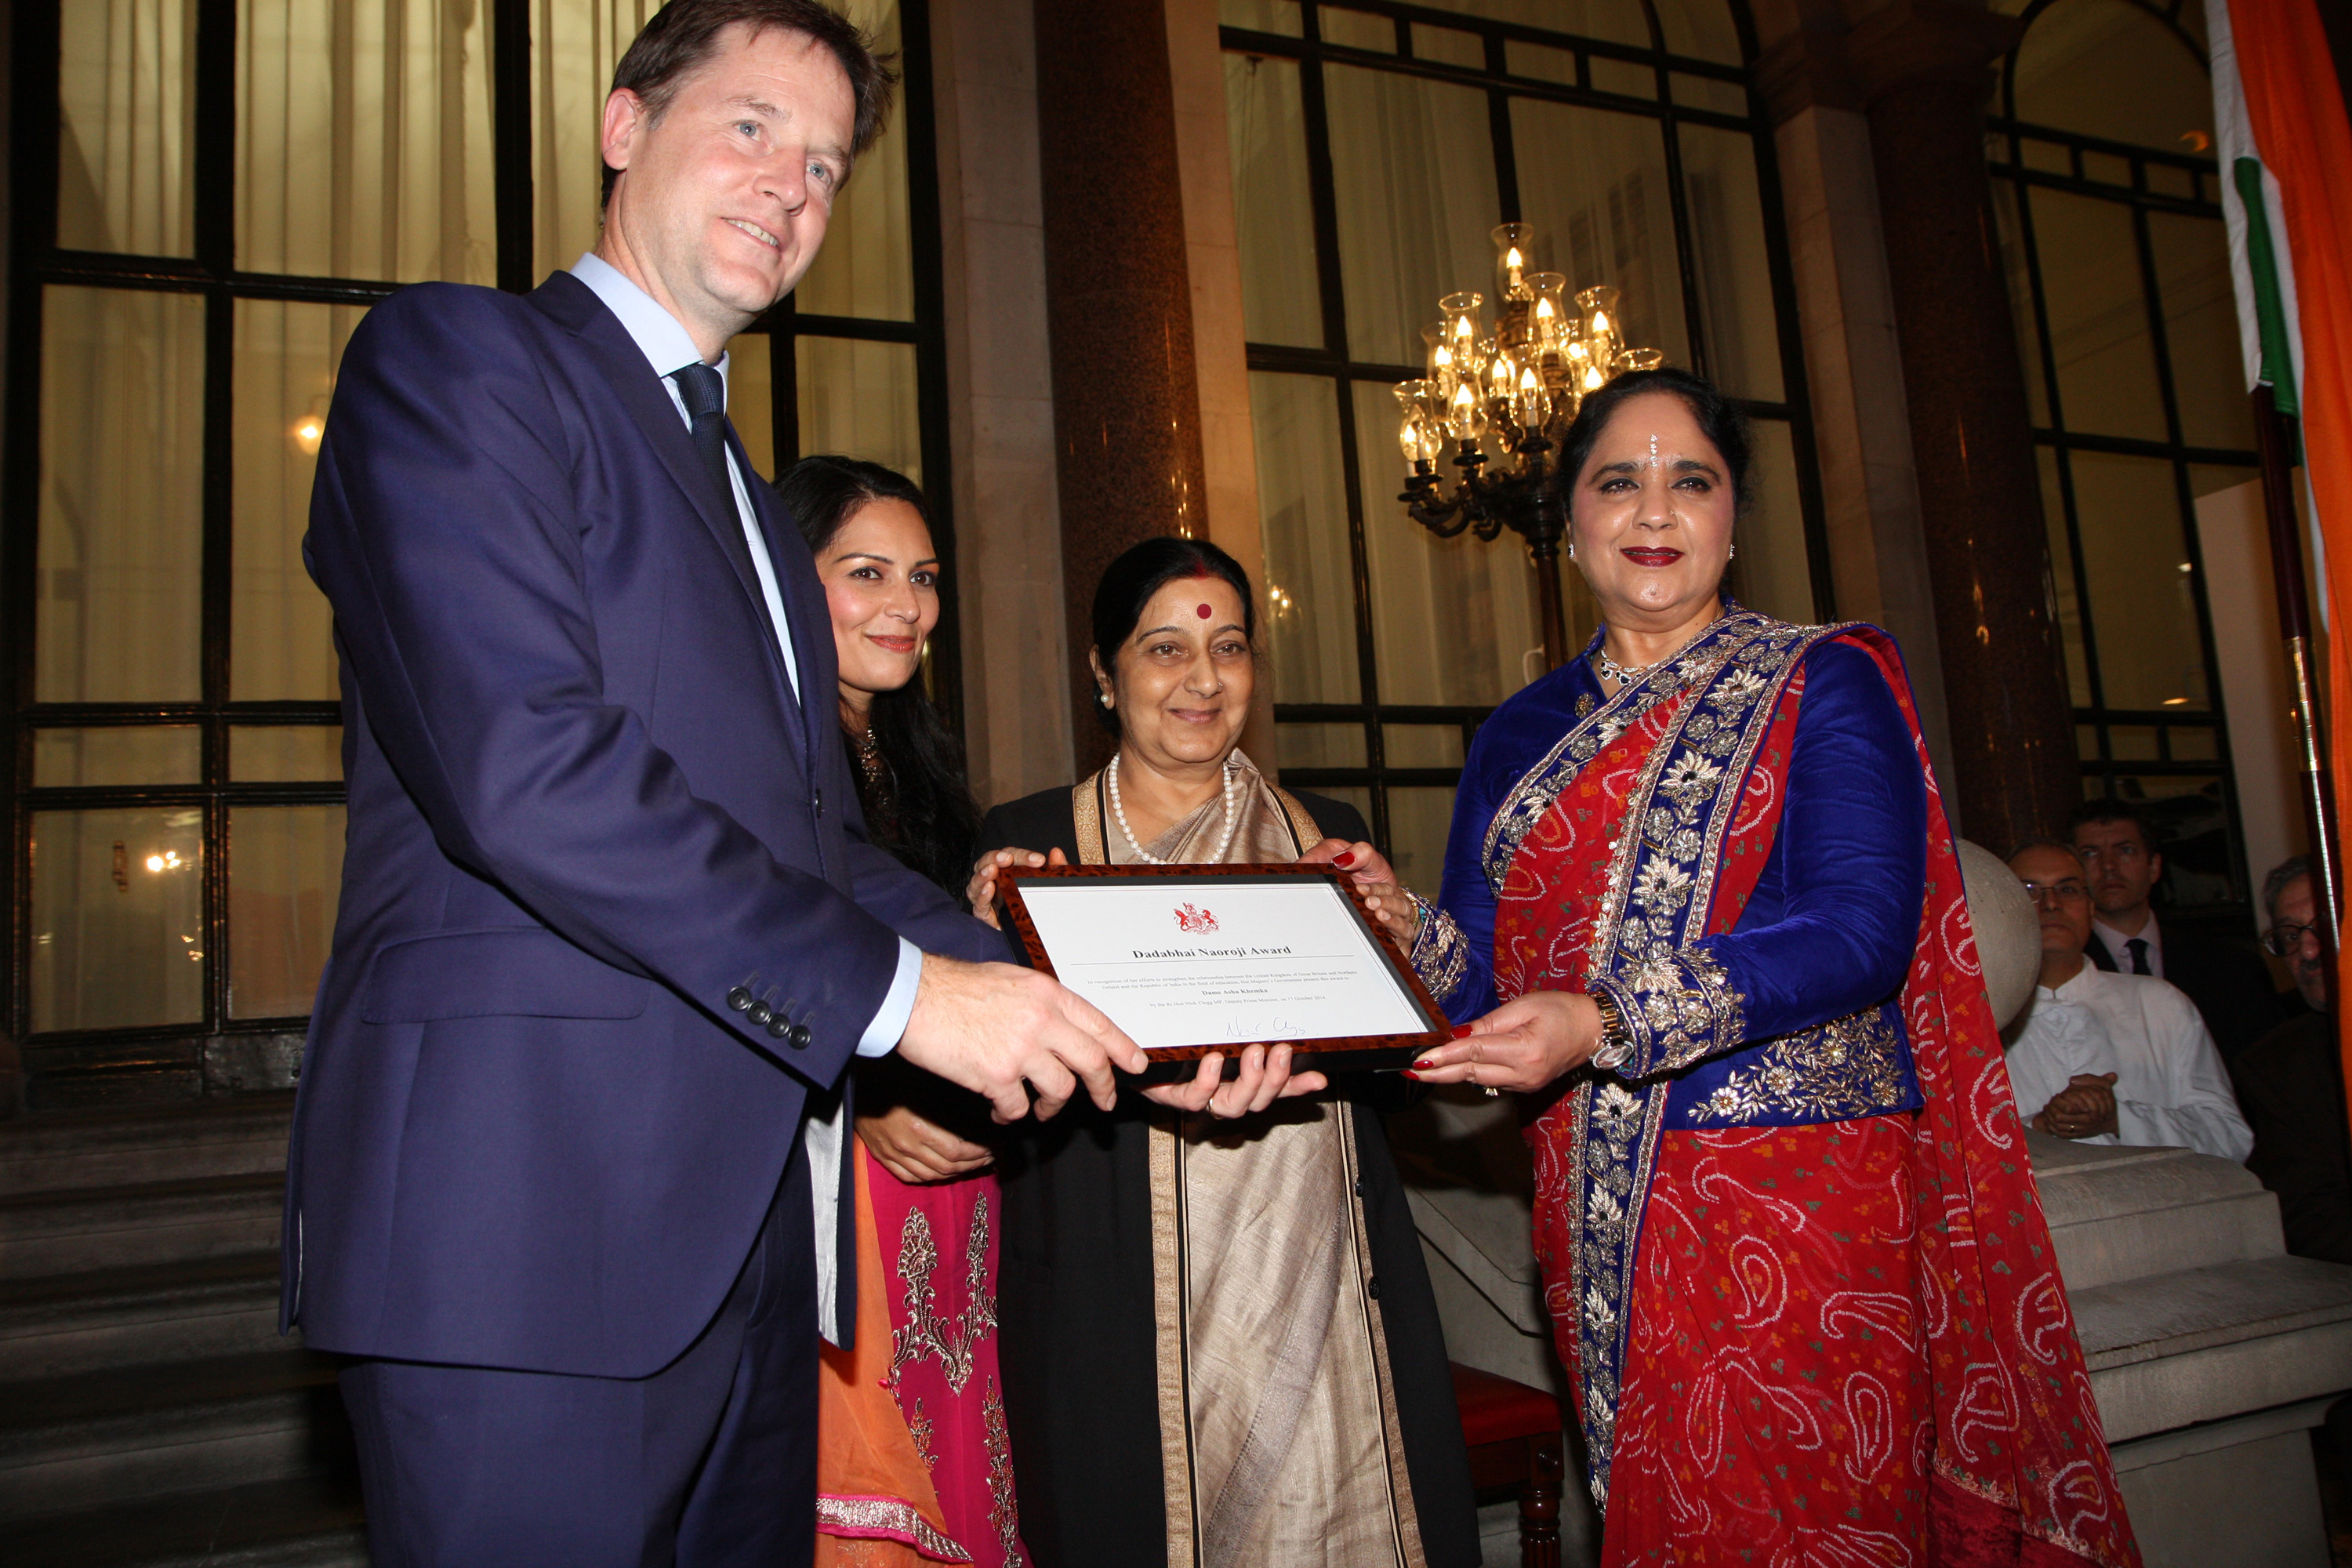 Dame Asha receives Dadabhai Naoroji Award from Deputy Prime Minister Nick Clegg as Indian Minister Sushma Swaraj and Priti Patel look on